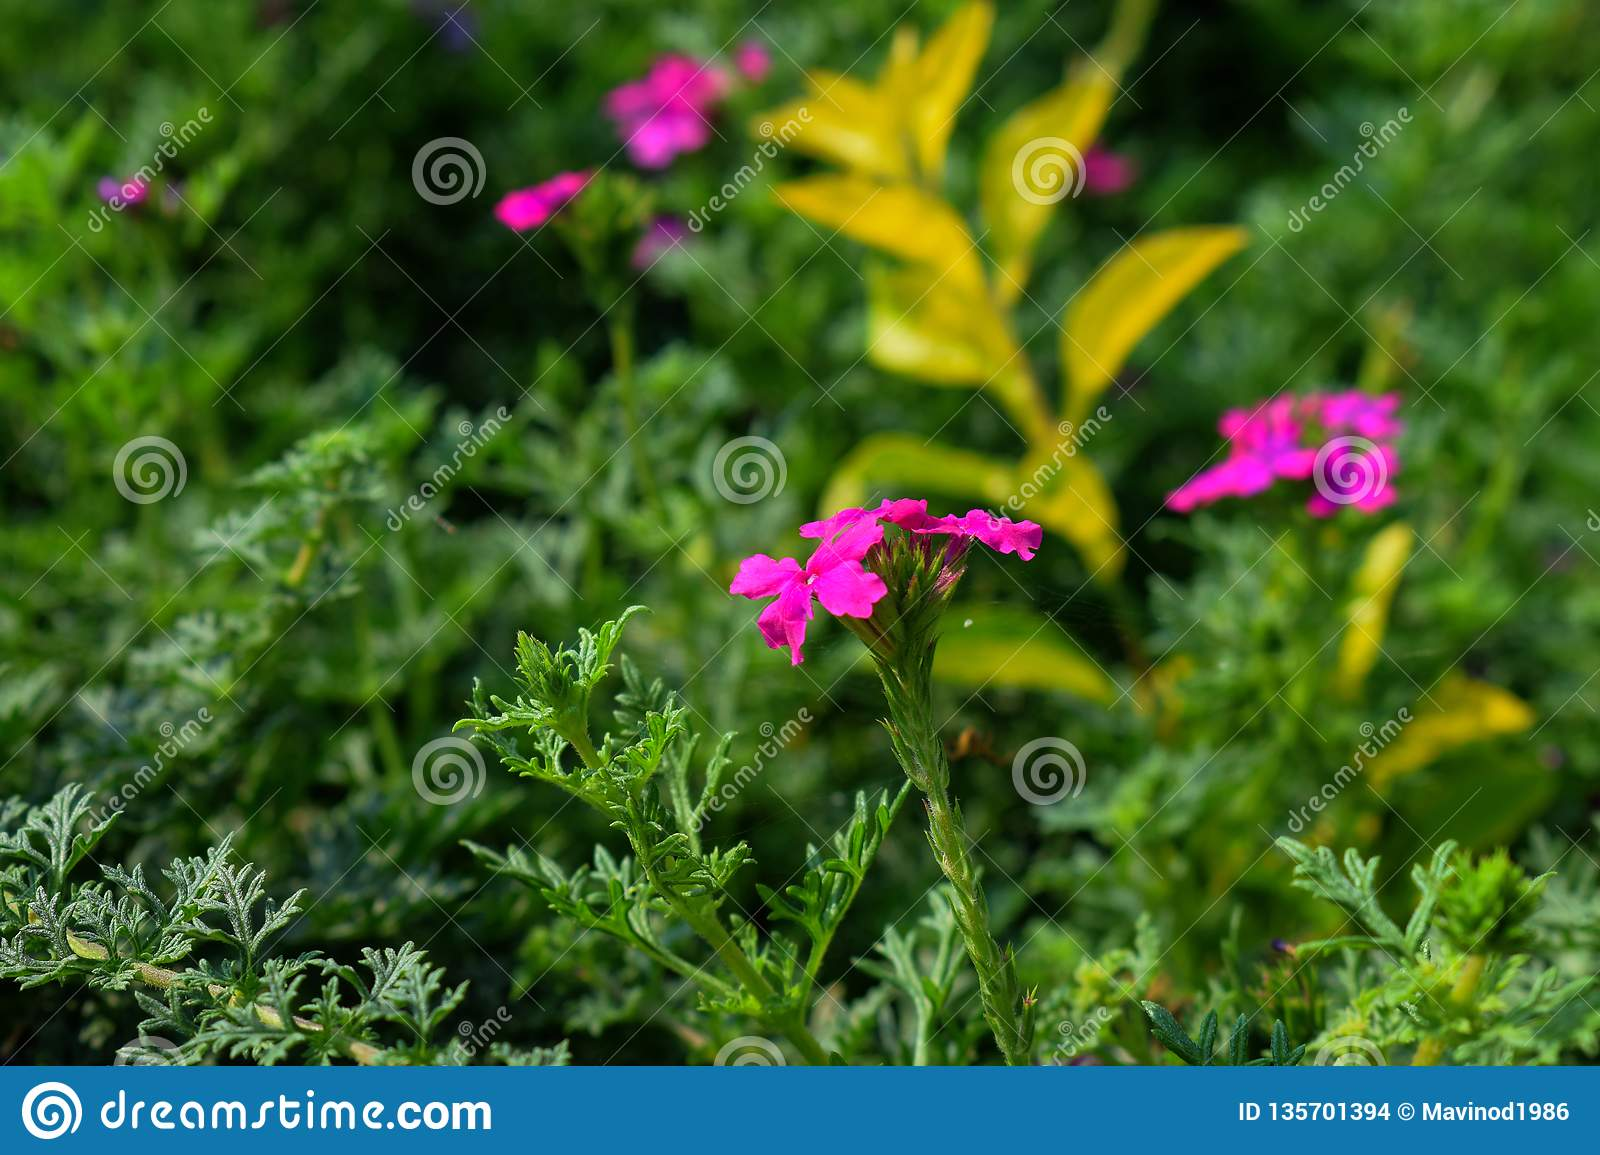 Pink colored attractive flowers in the garden with green leaves in the background